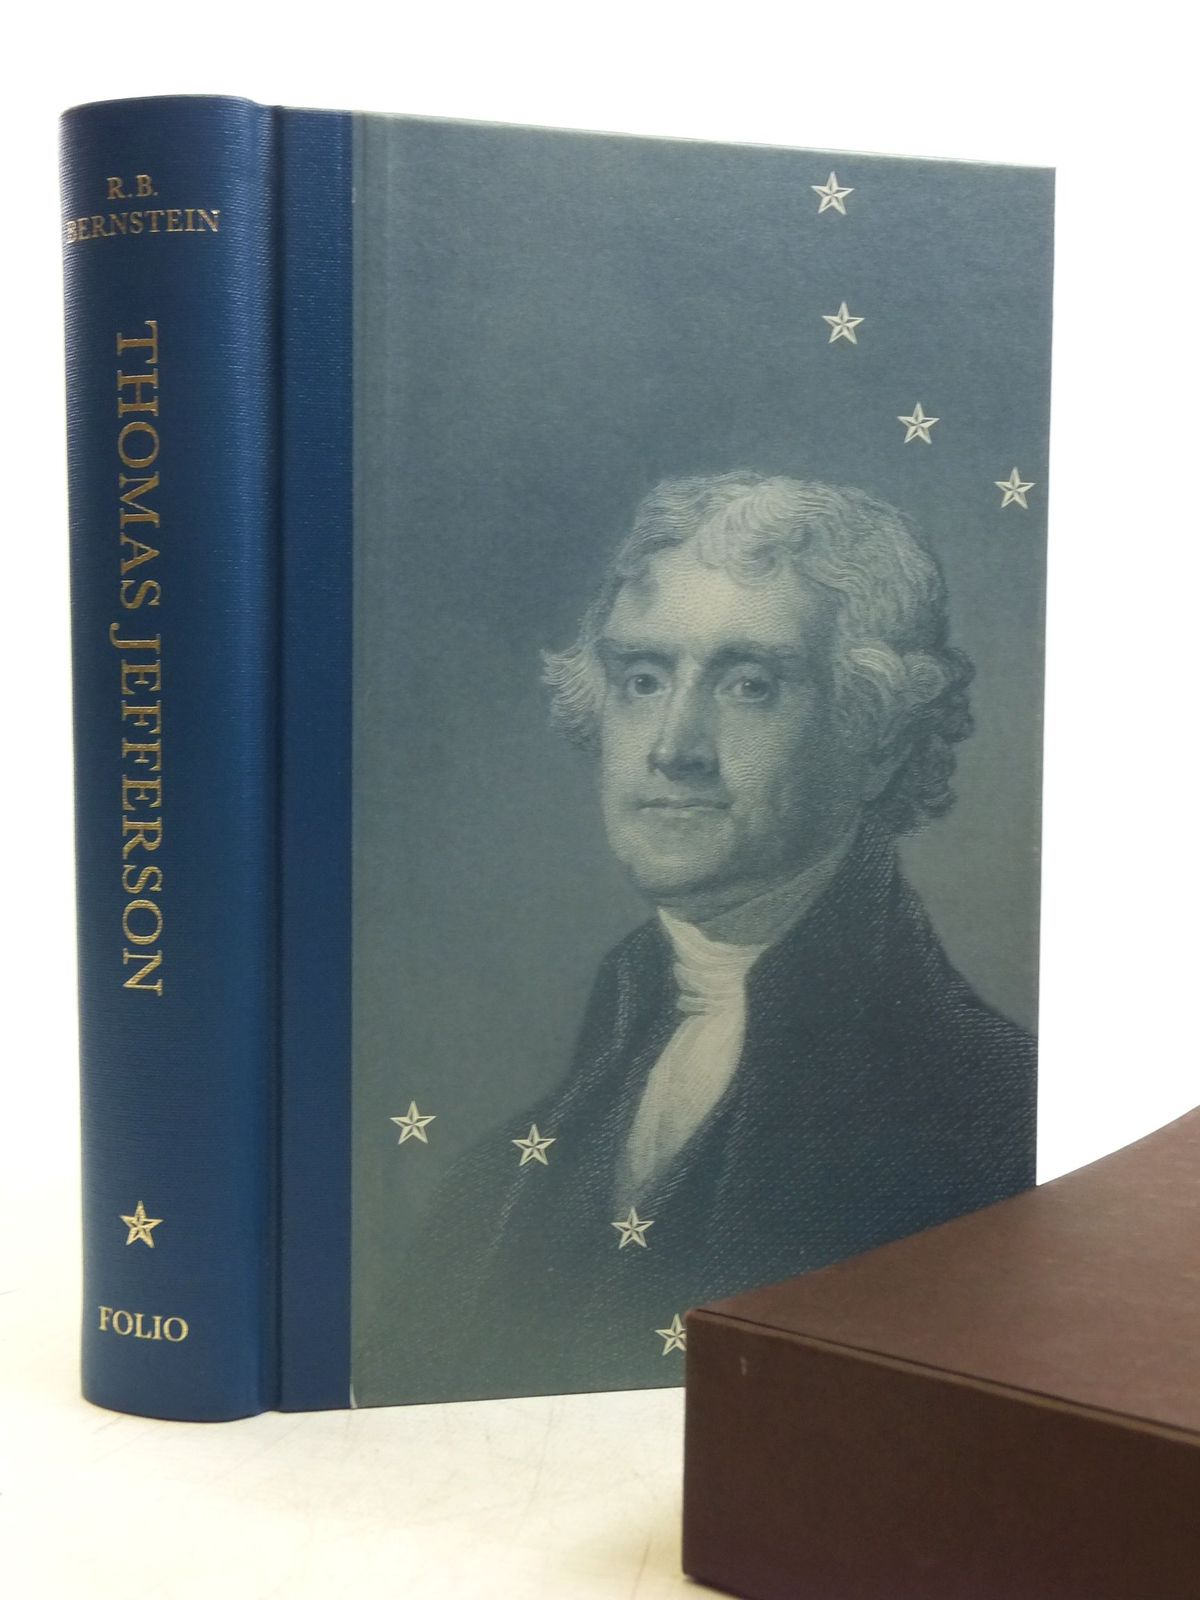 Photo of THOMAS JEFFERSON written by Bernstein, R.B. published by Folio Society (STOCK CODE: 2118898)  for sale by Stella & Rose's Books